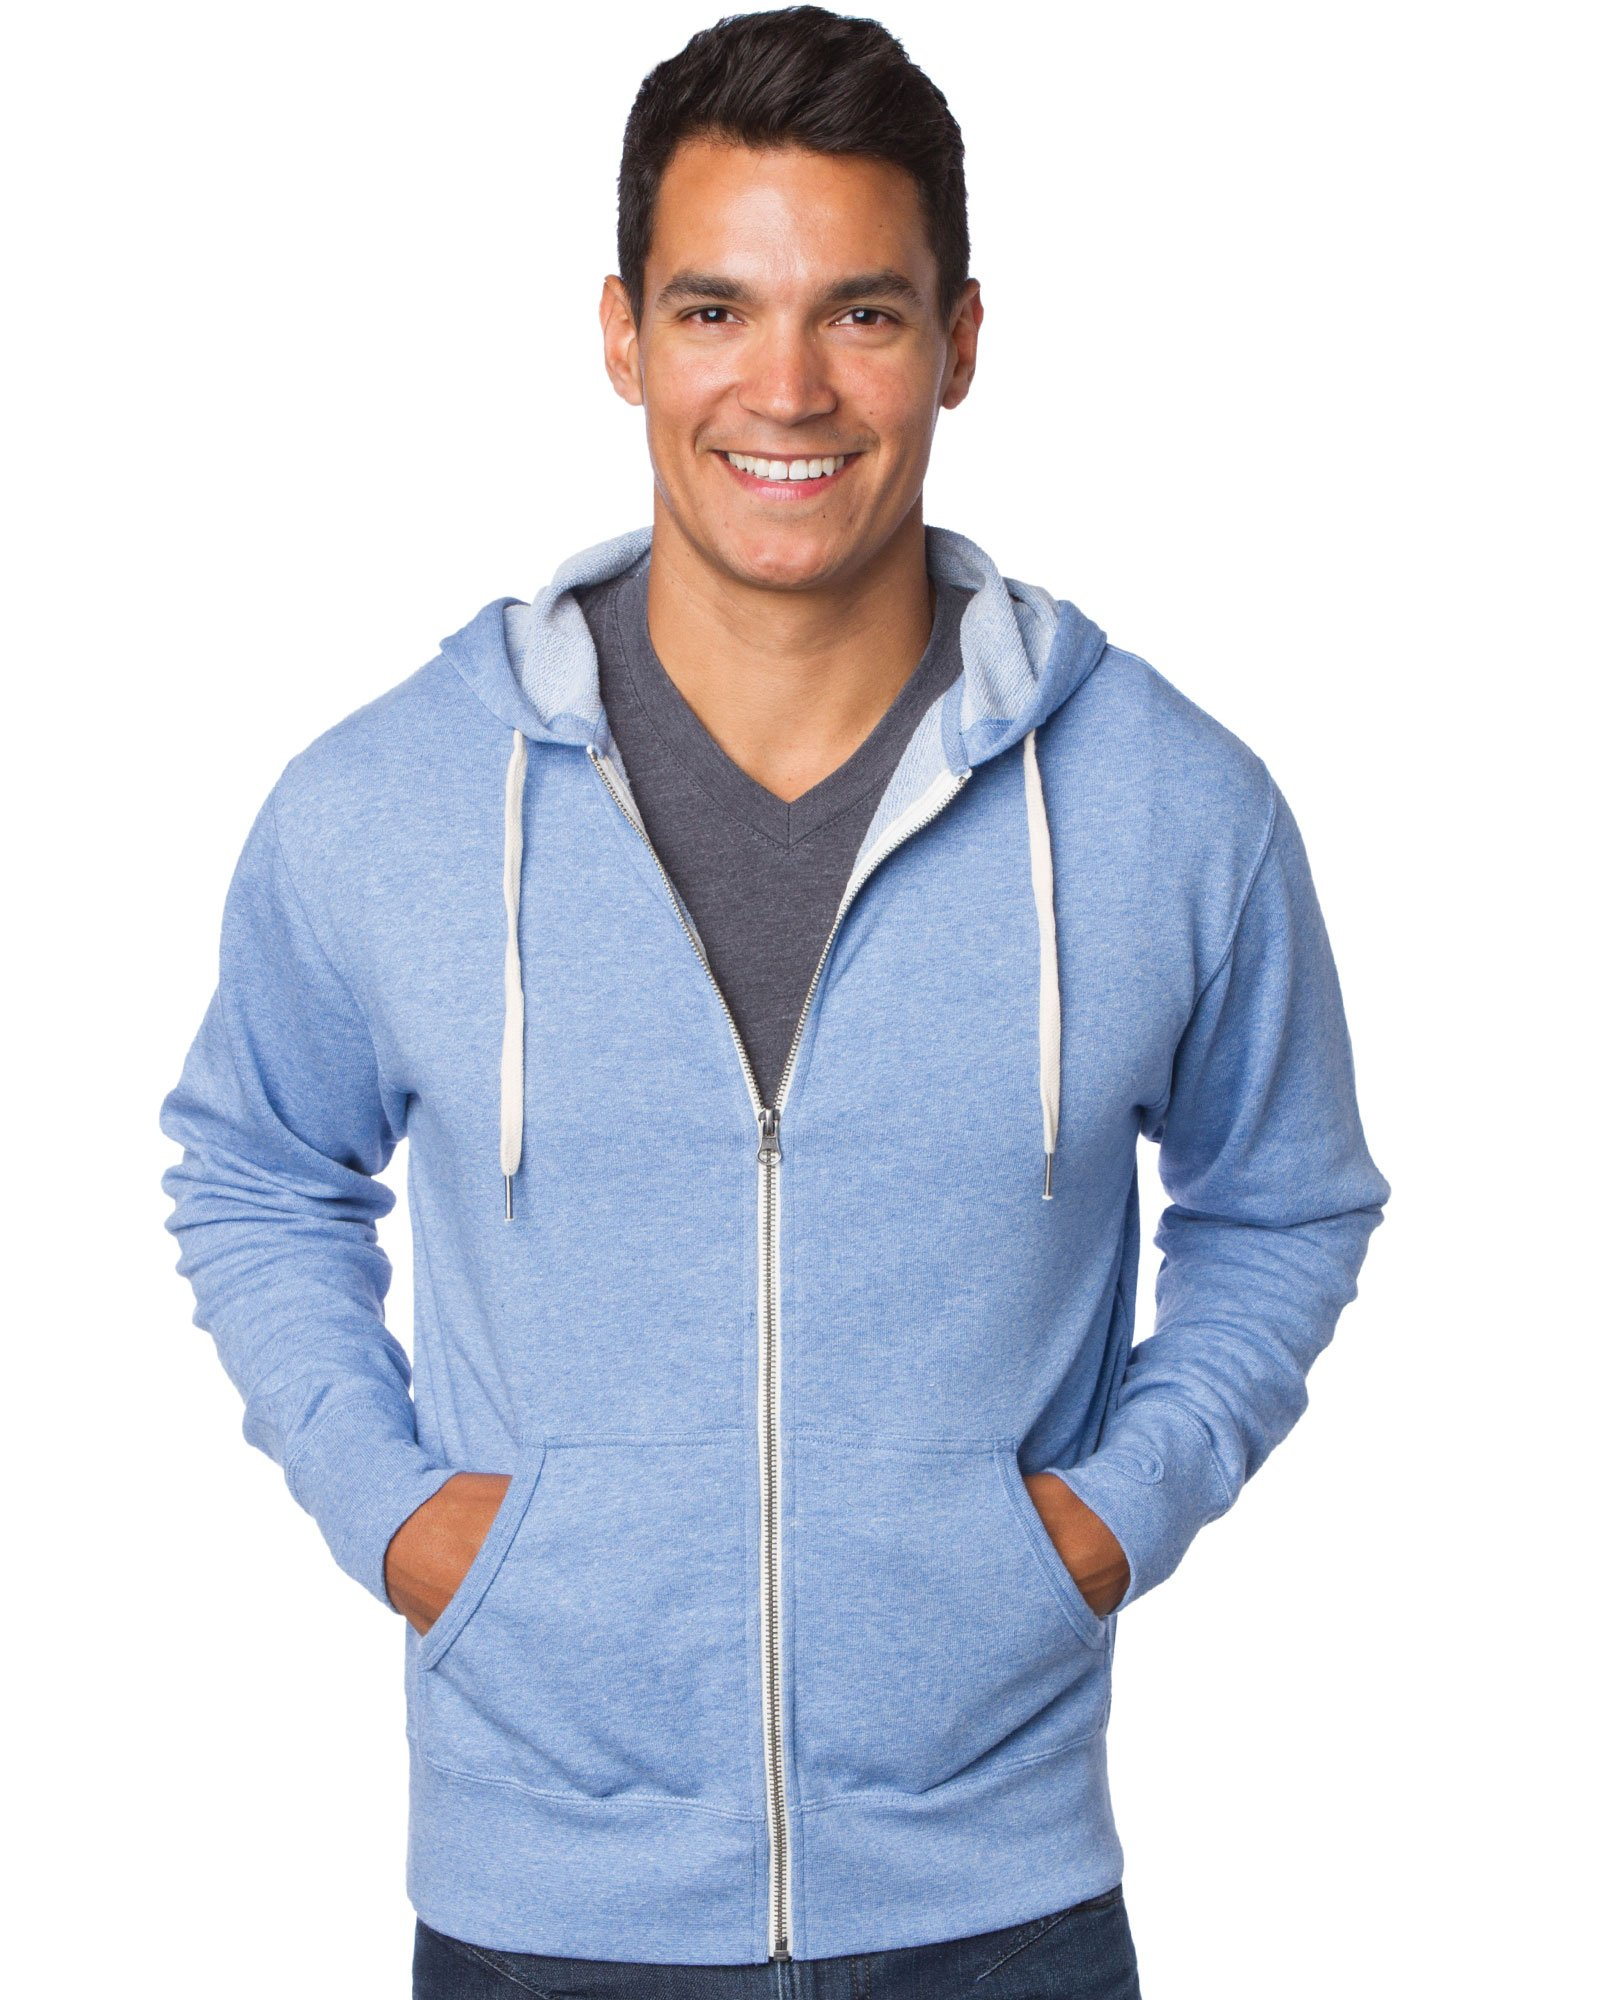 Global Blank Slim Fit French Terry Lightweight Zip Up Hoodie for Women and Men XS Light Blue